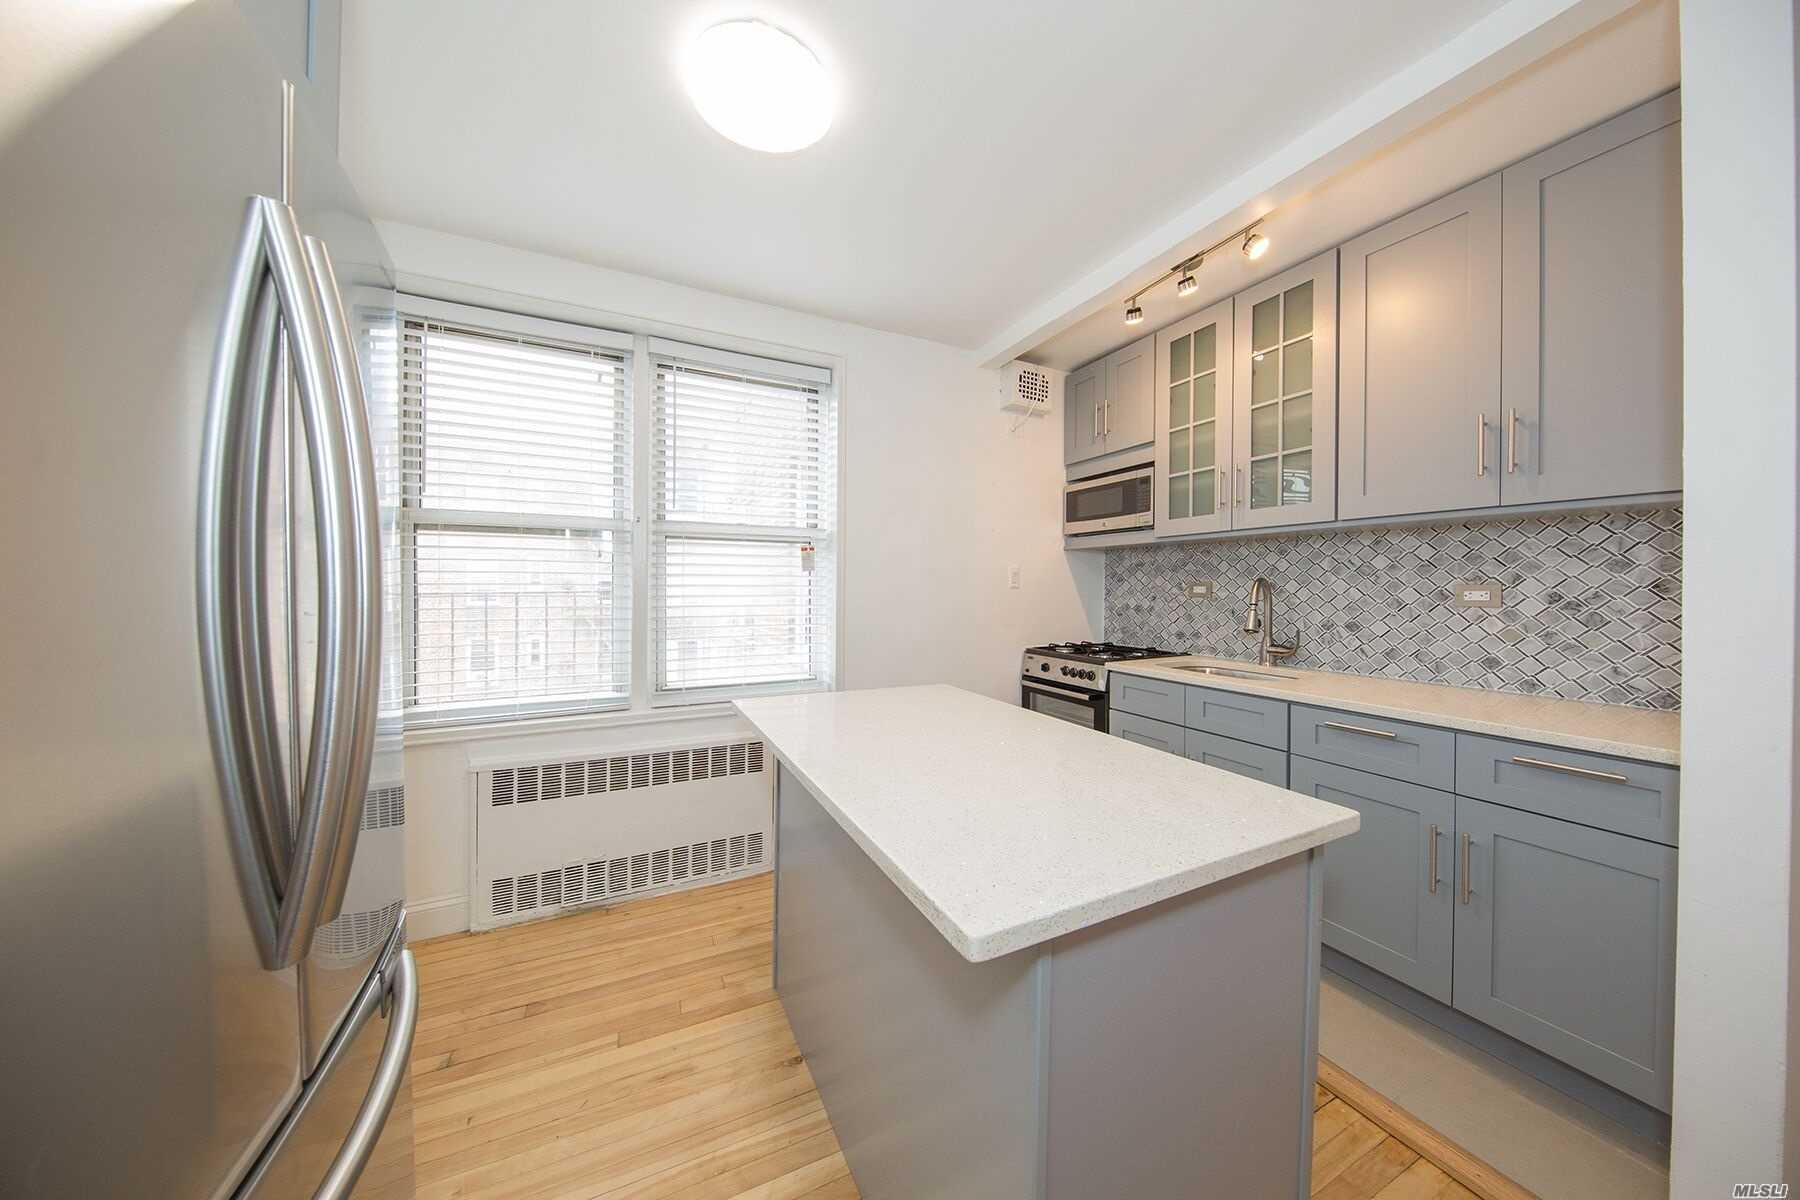 Beautiful One Bedroom Coop In A Well Maintained Elevator Building. Completely Renovated With New Stainless Steel Appliances, Quartz Countertops, Island, Marble Bath And More.. Indoor Garage, Laundry On Premises, Low Maintenance. Close To Major Transportation.